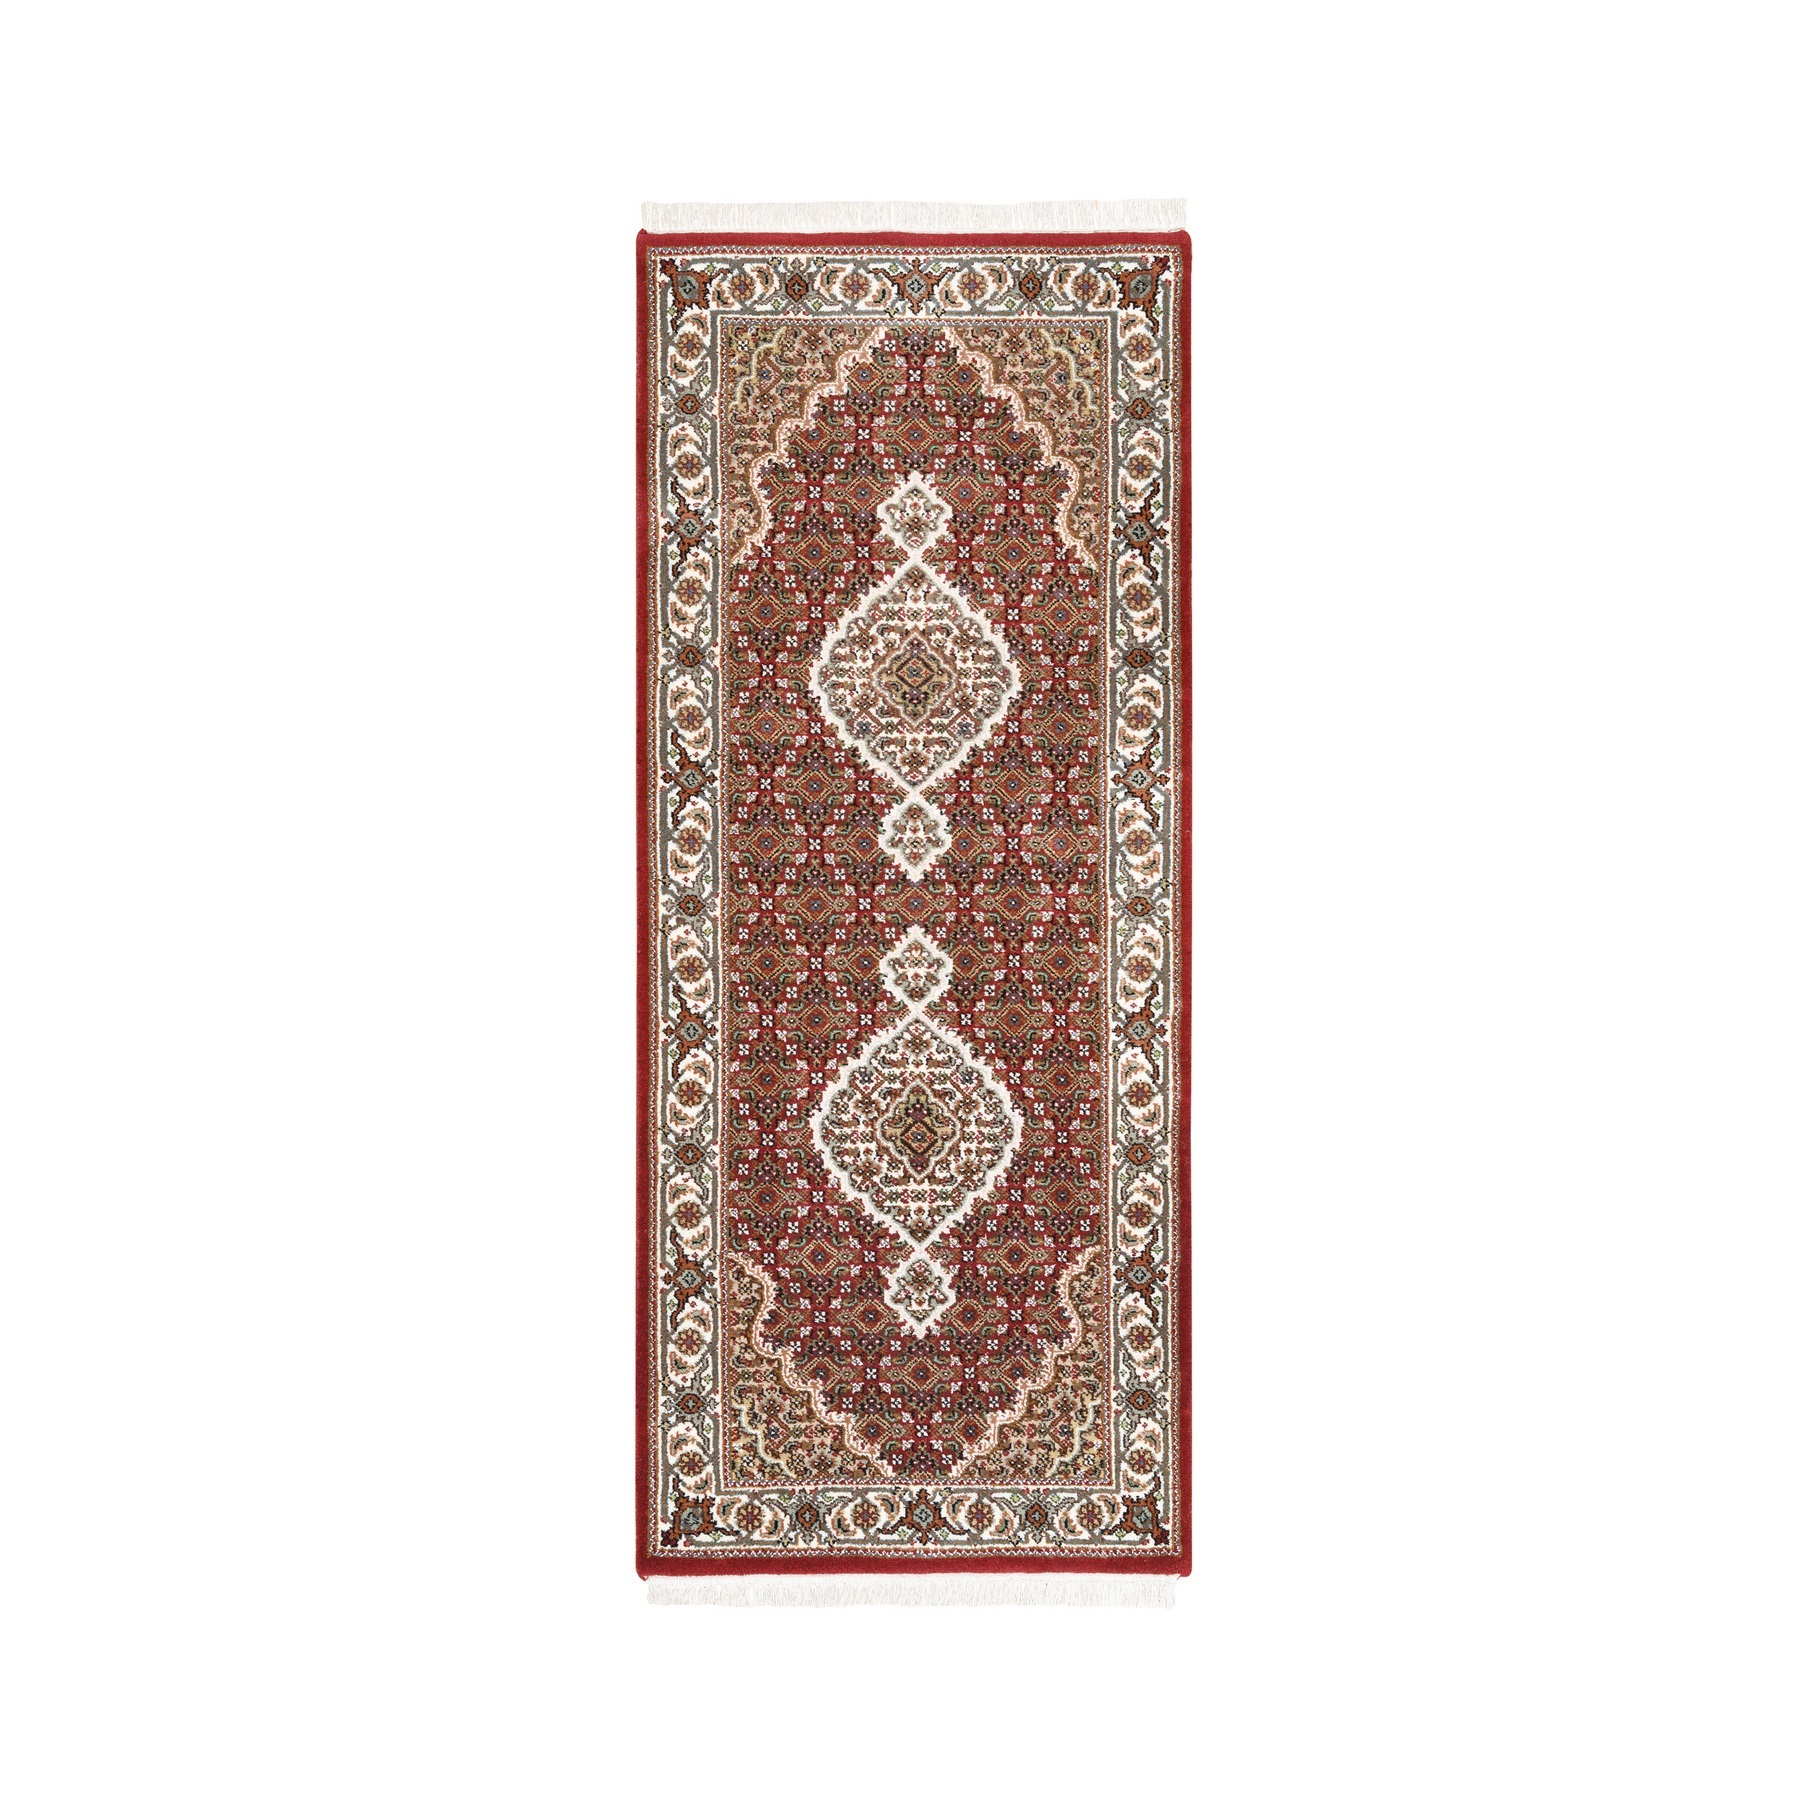 "2'8""x6'6"" Wool And Silk Fish Medallion Design Tabriz Mahi Red Hand Woven Oriental Runner Rug"